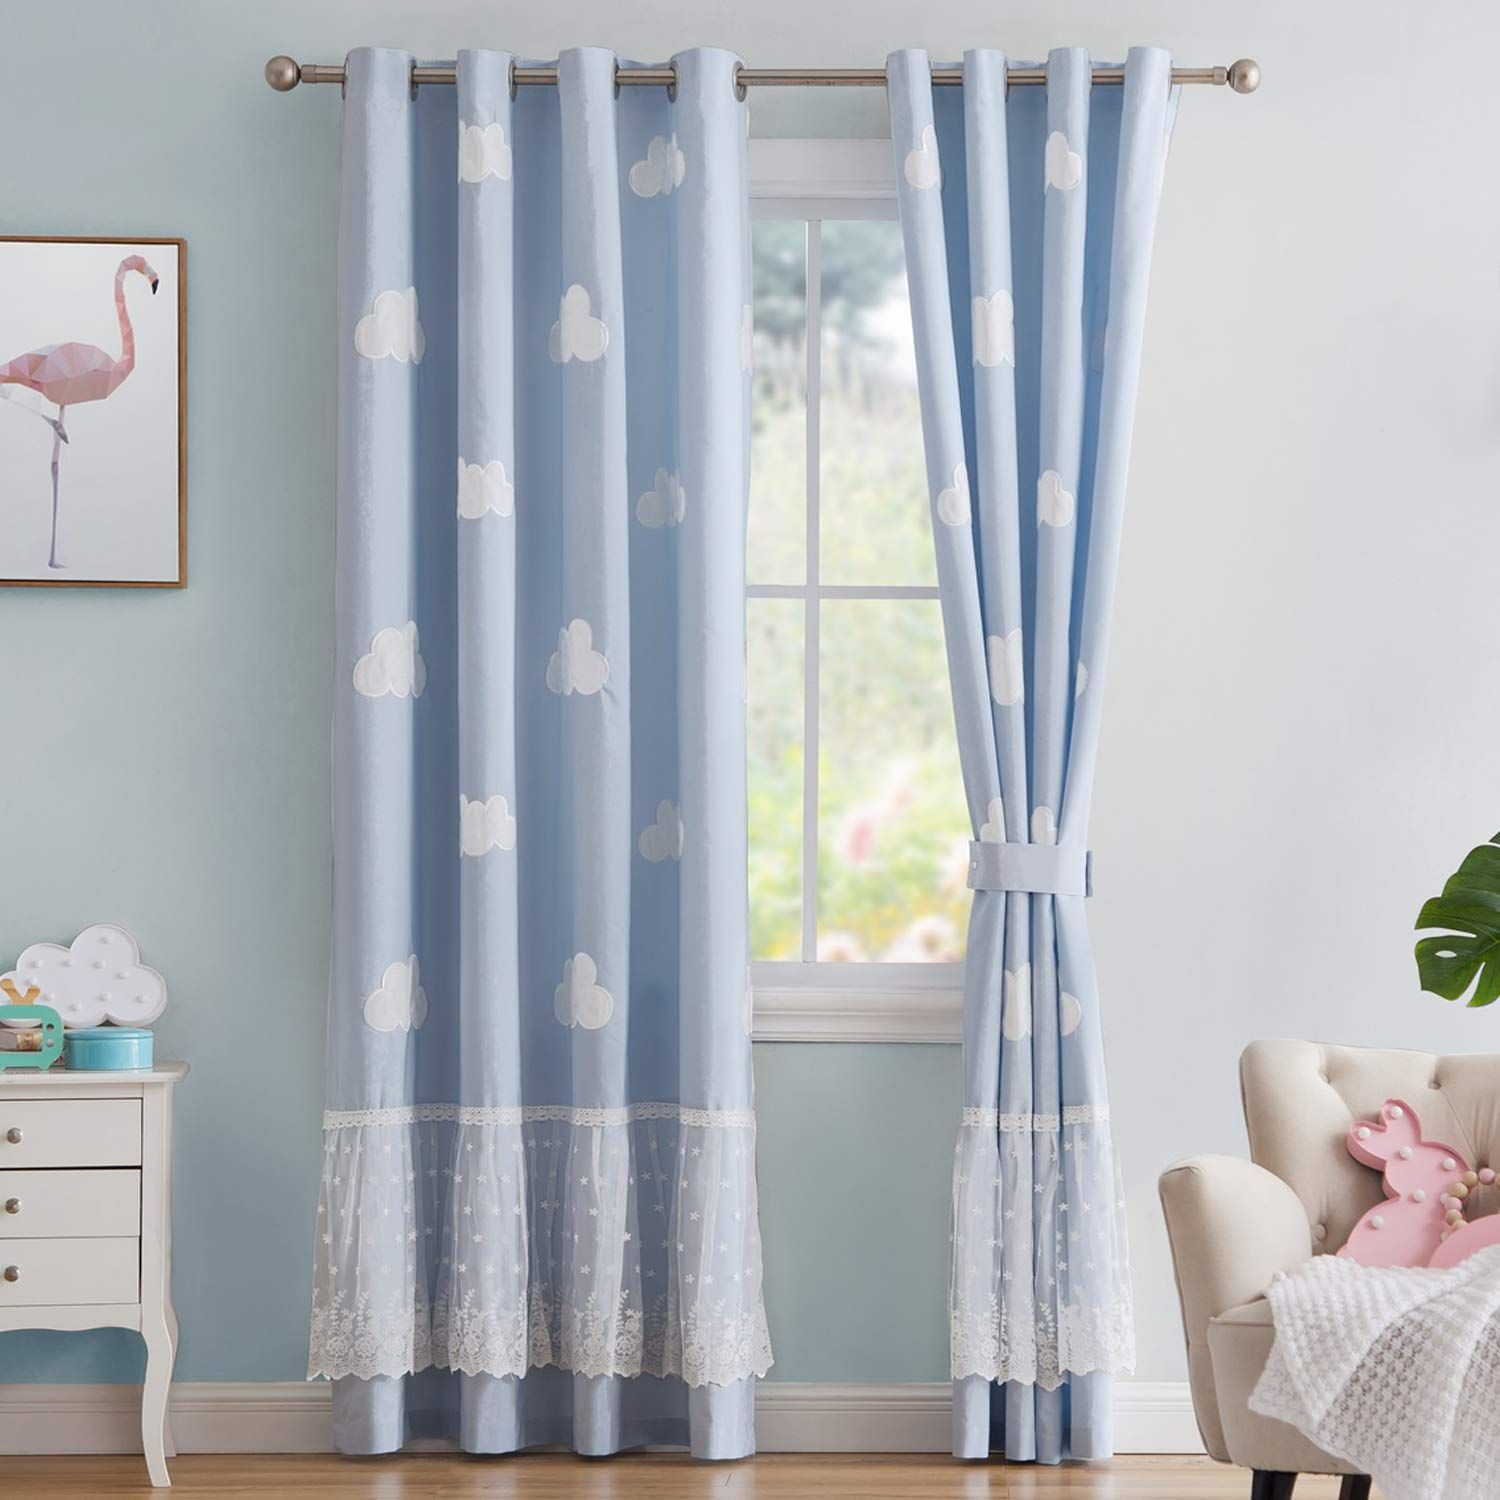 Vandesun Cloud Curtain Panel With Grommet Top For Kids Room Nursery Room Blue Sky With White Clouds 2 Panels In 2020 Blue Curtains Baby Room Curtains Panel Curtains